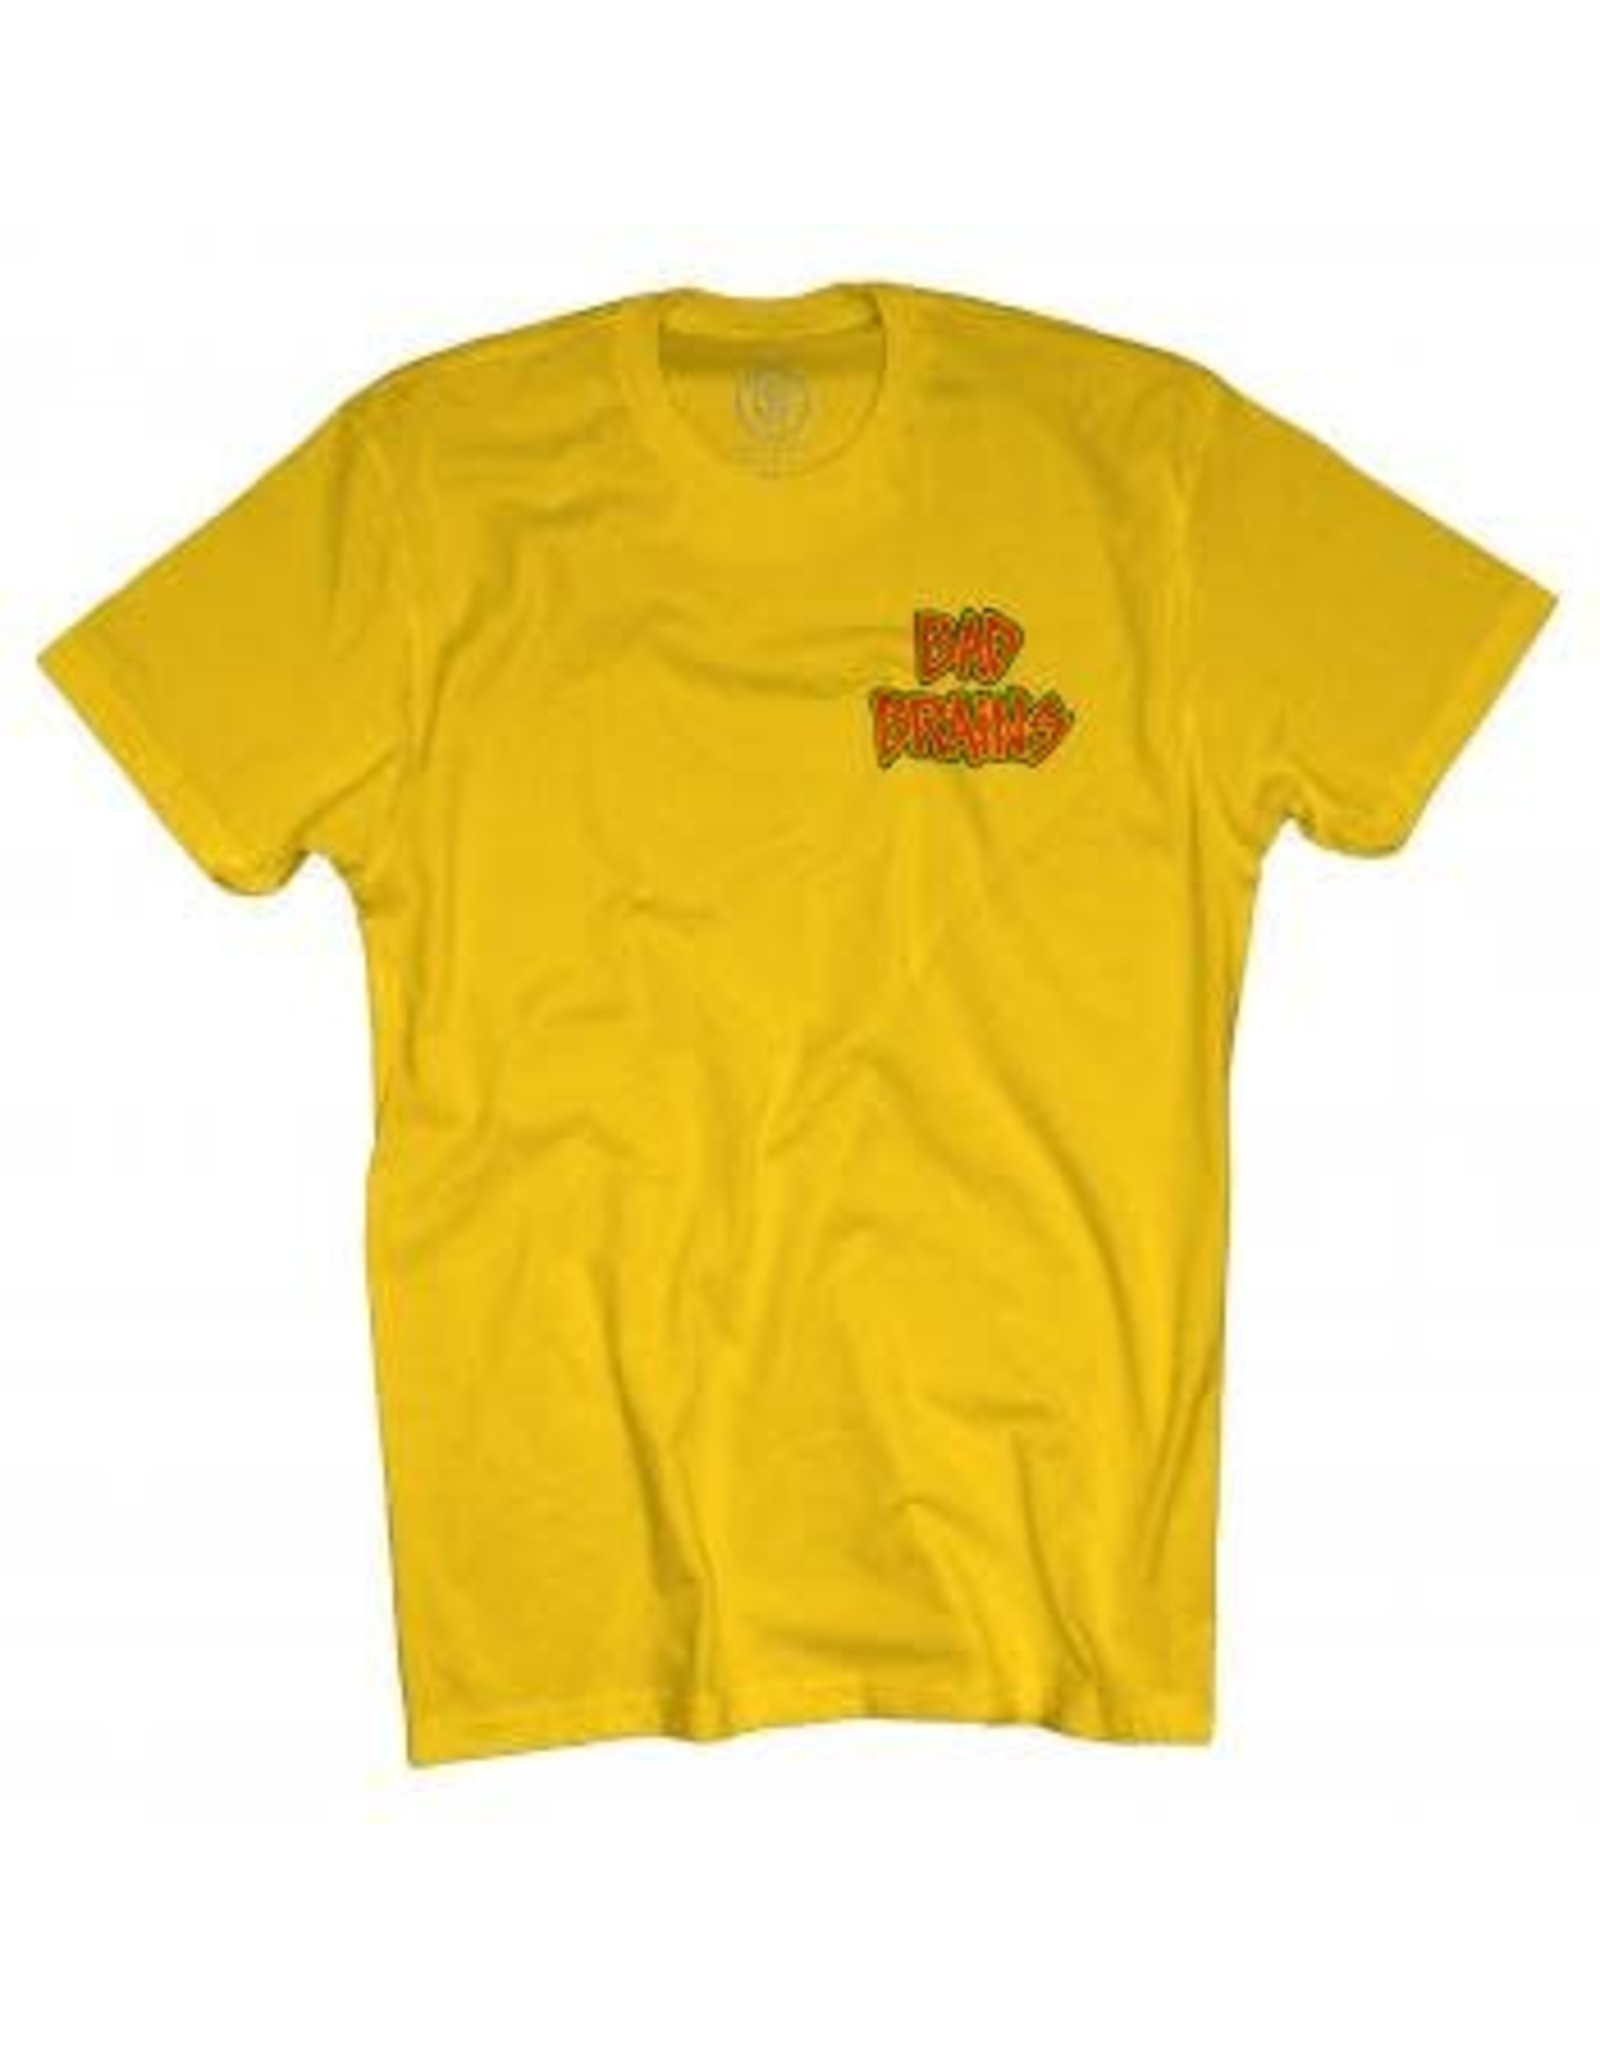 "Bad Brains ""Front Logo"" T-Shirt"